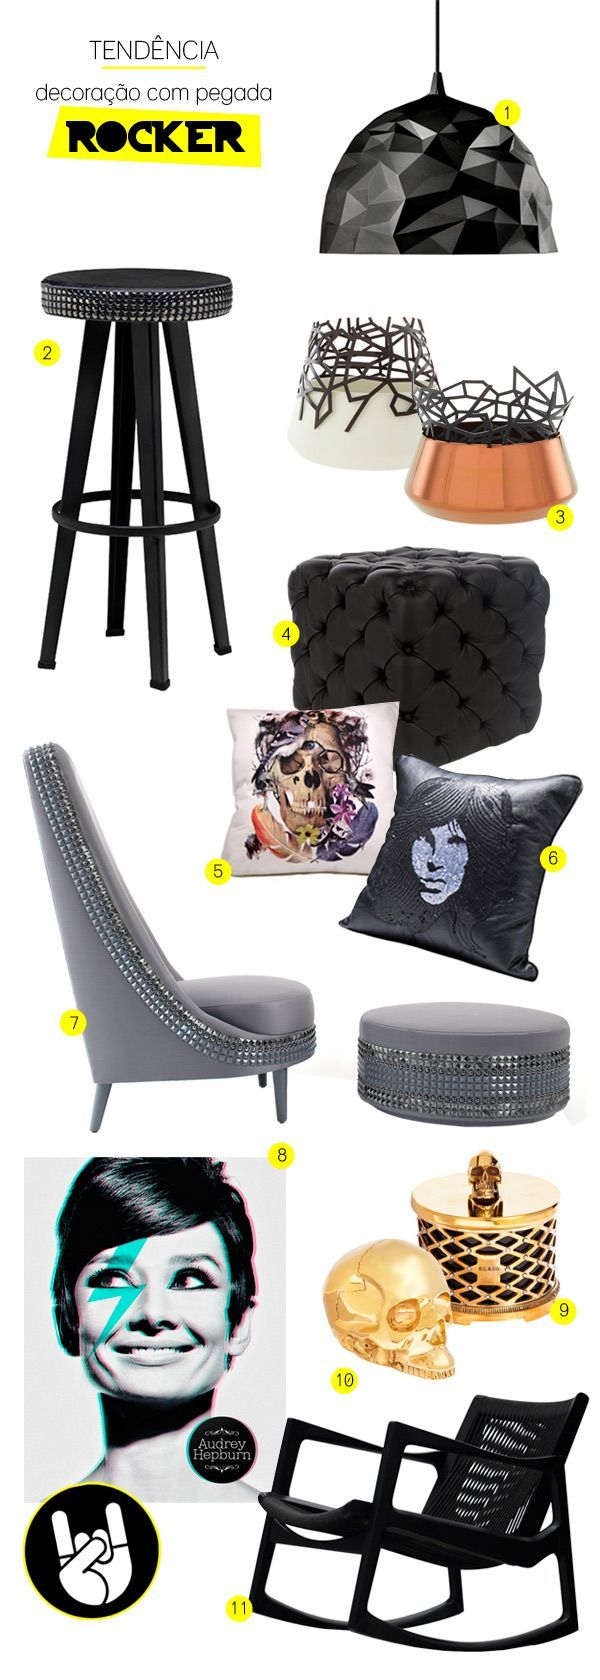 rock n roll furniture and decor #decor #rocknroll  decor diy . en